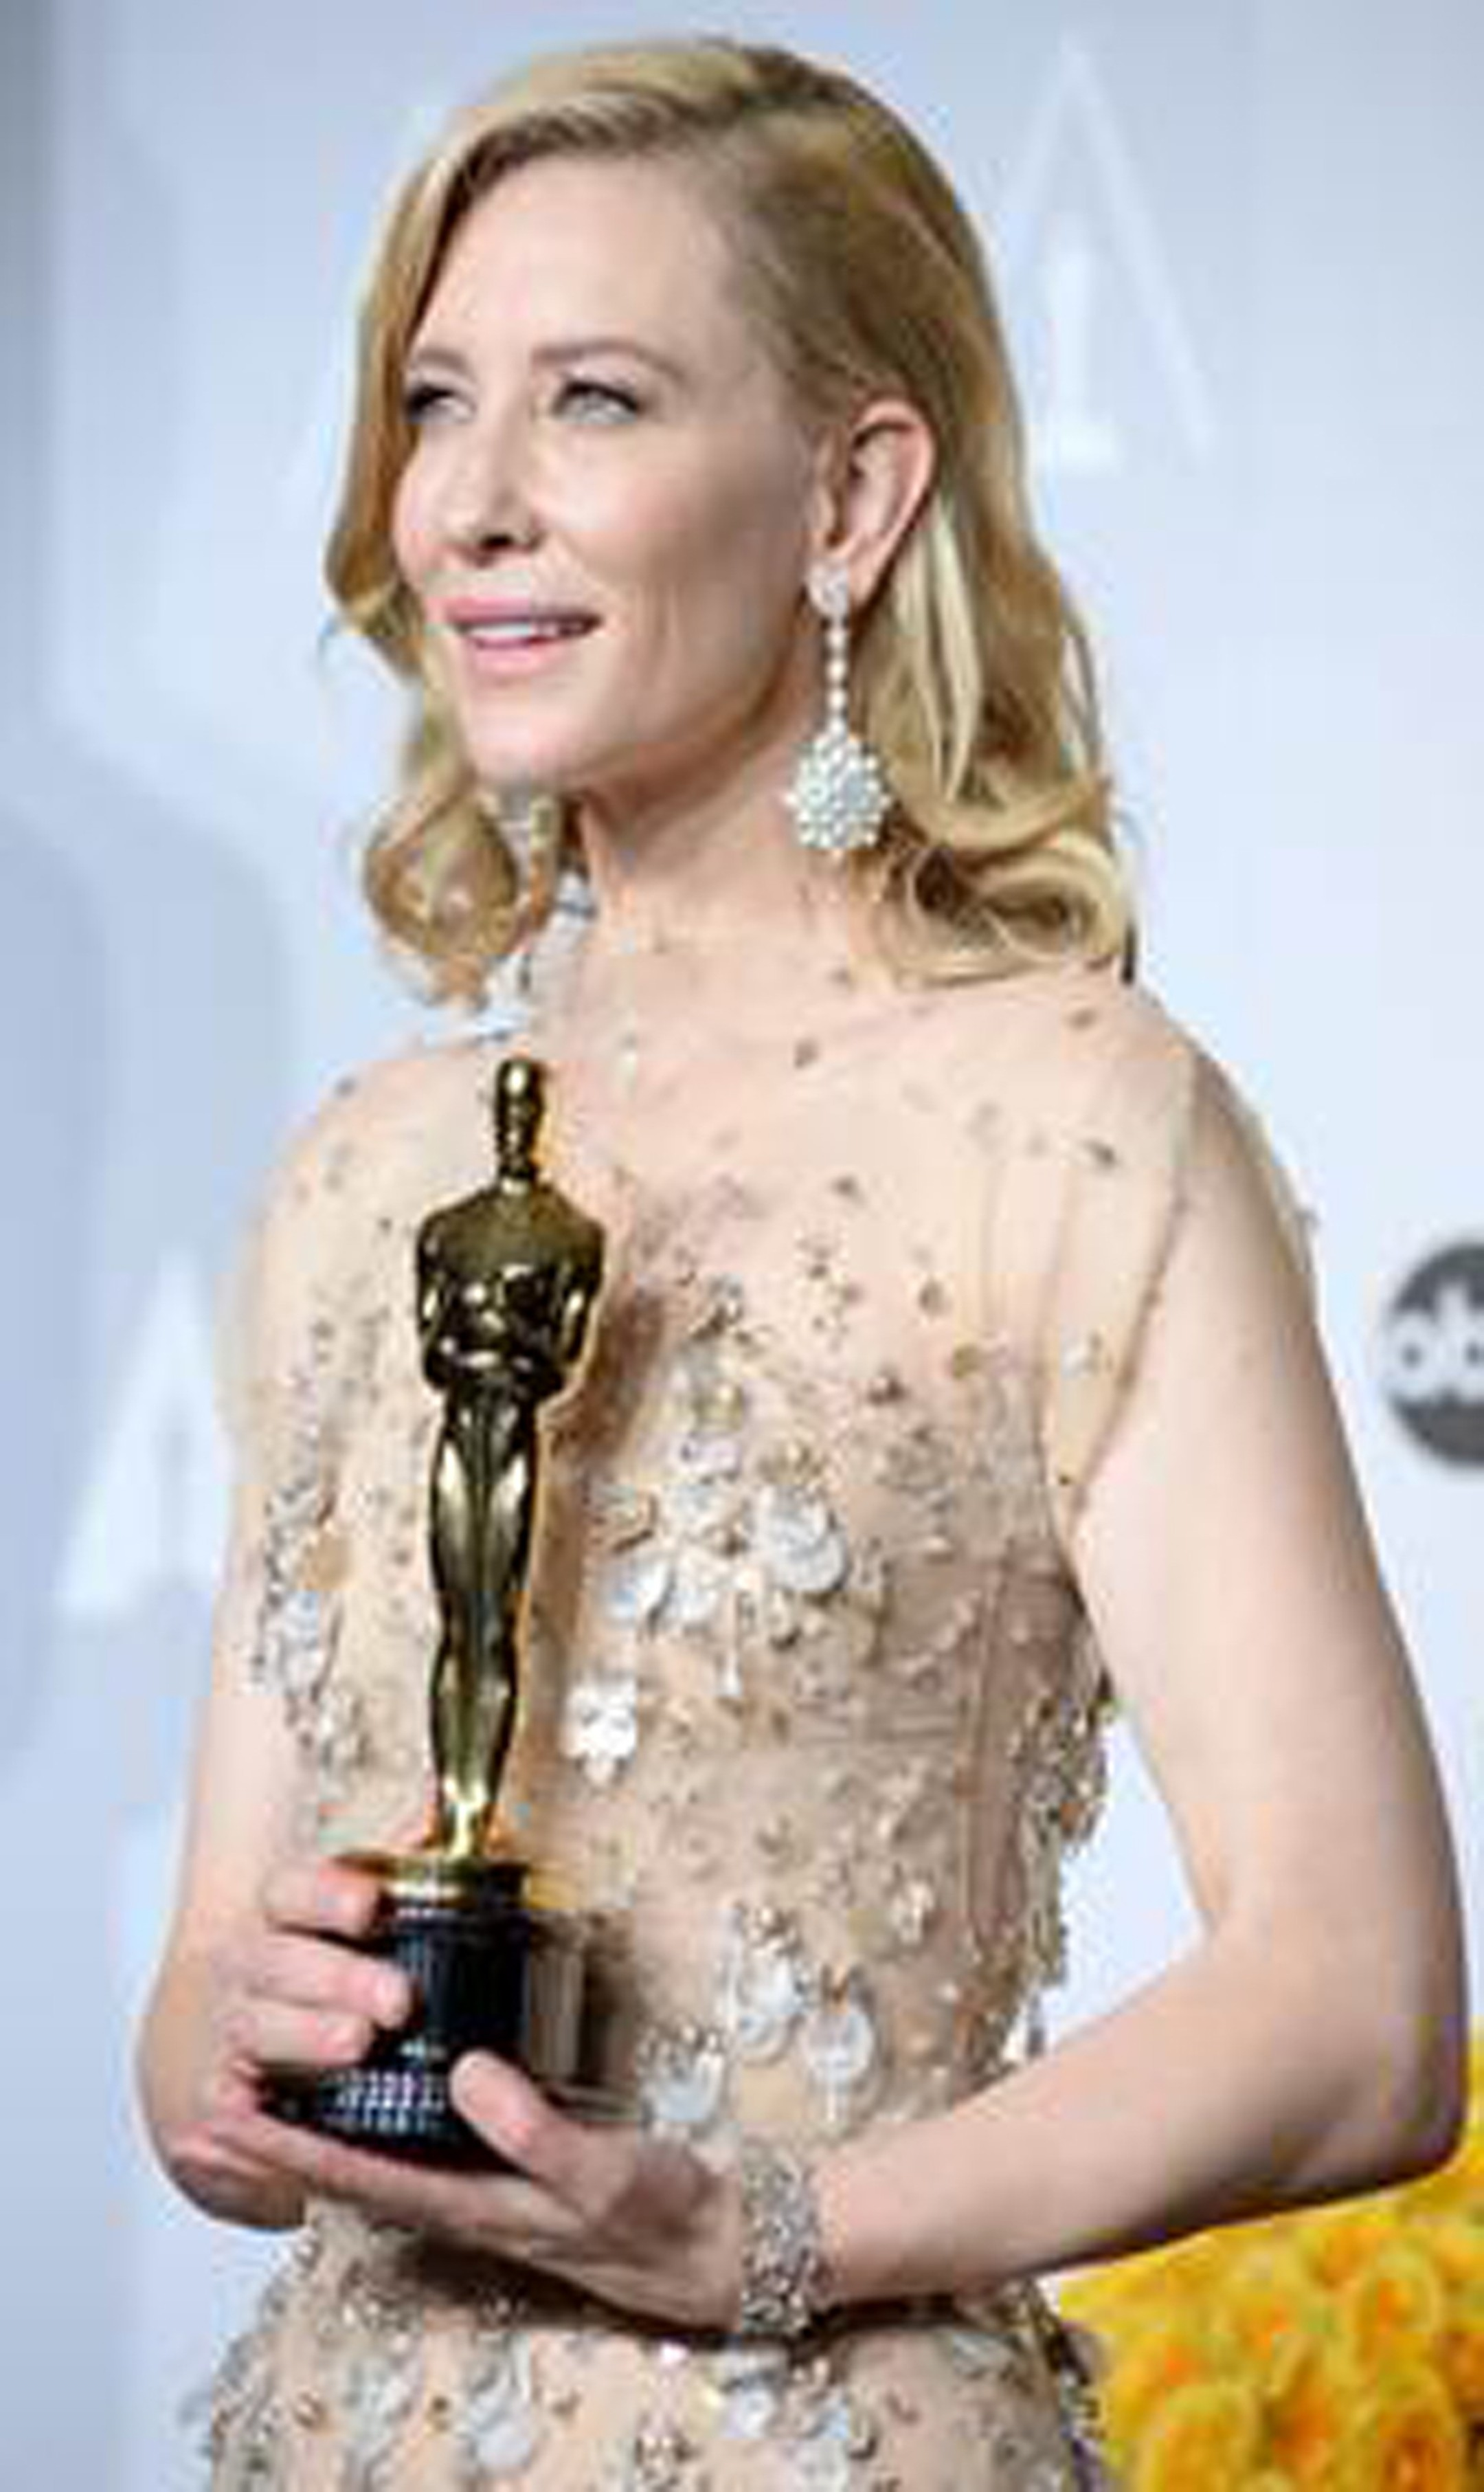 Academy Awards Winner for Best Actress in a Leading Role, Cate Blanchett gave a preview of Chopard's 2014 Red Carpet Collection at the Oscars 2014